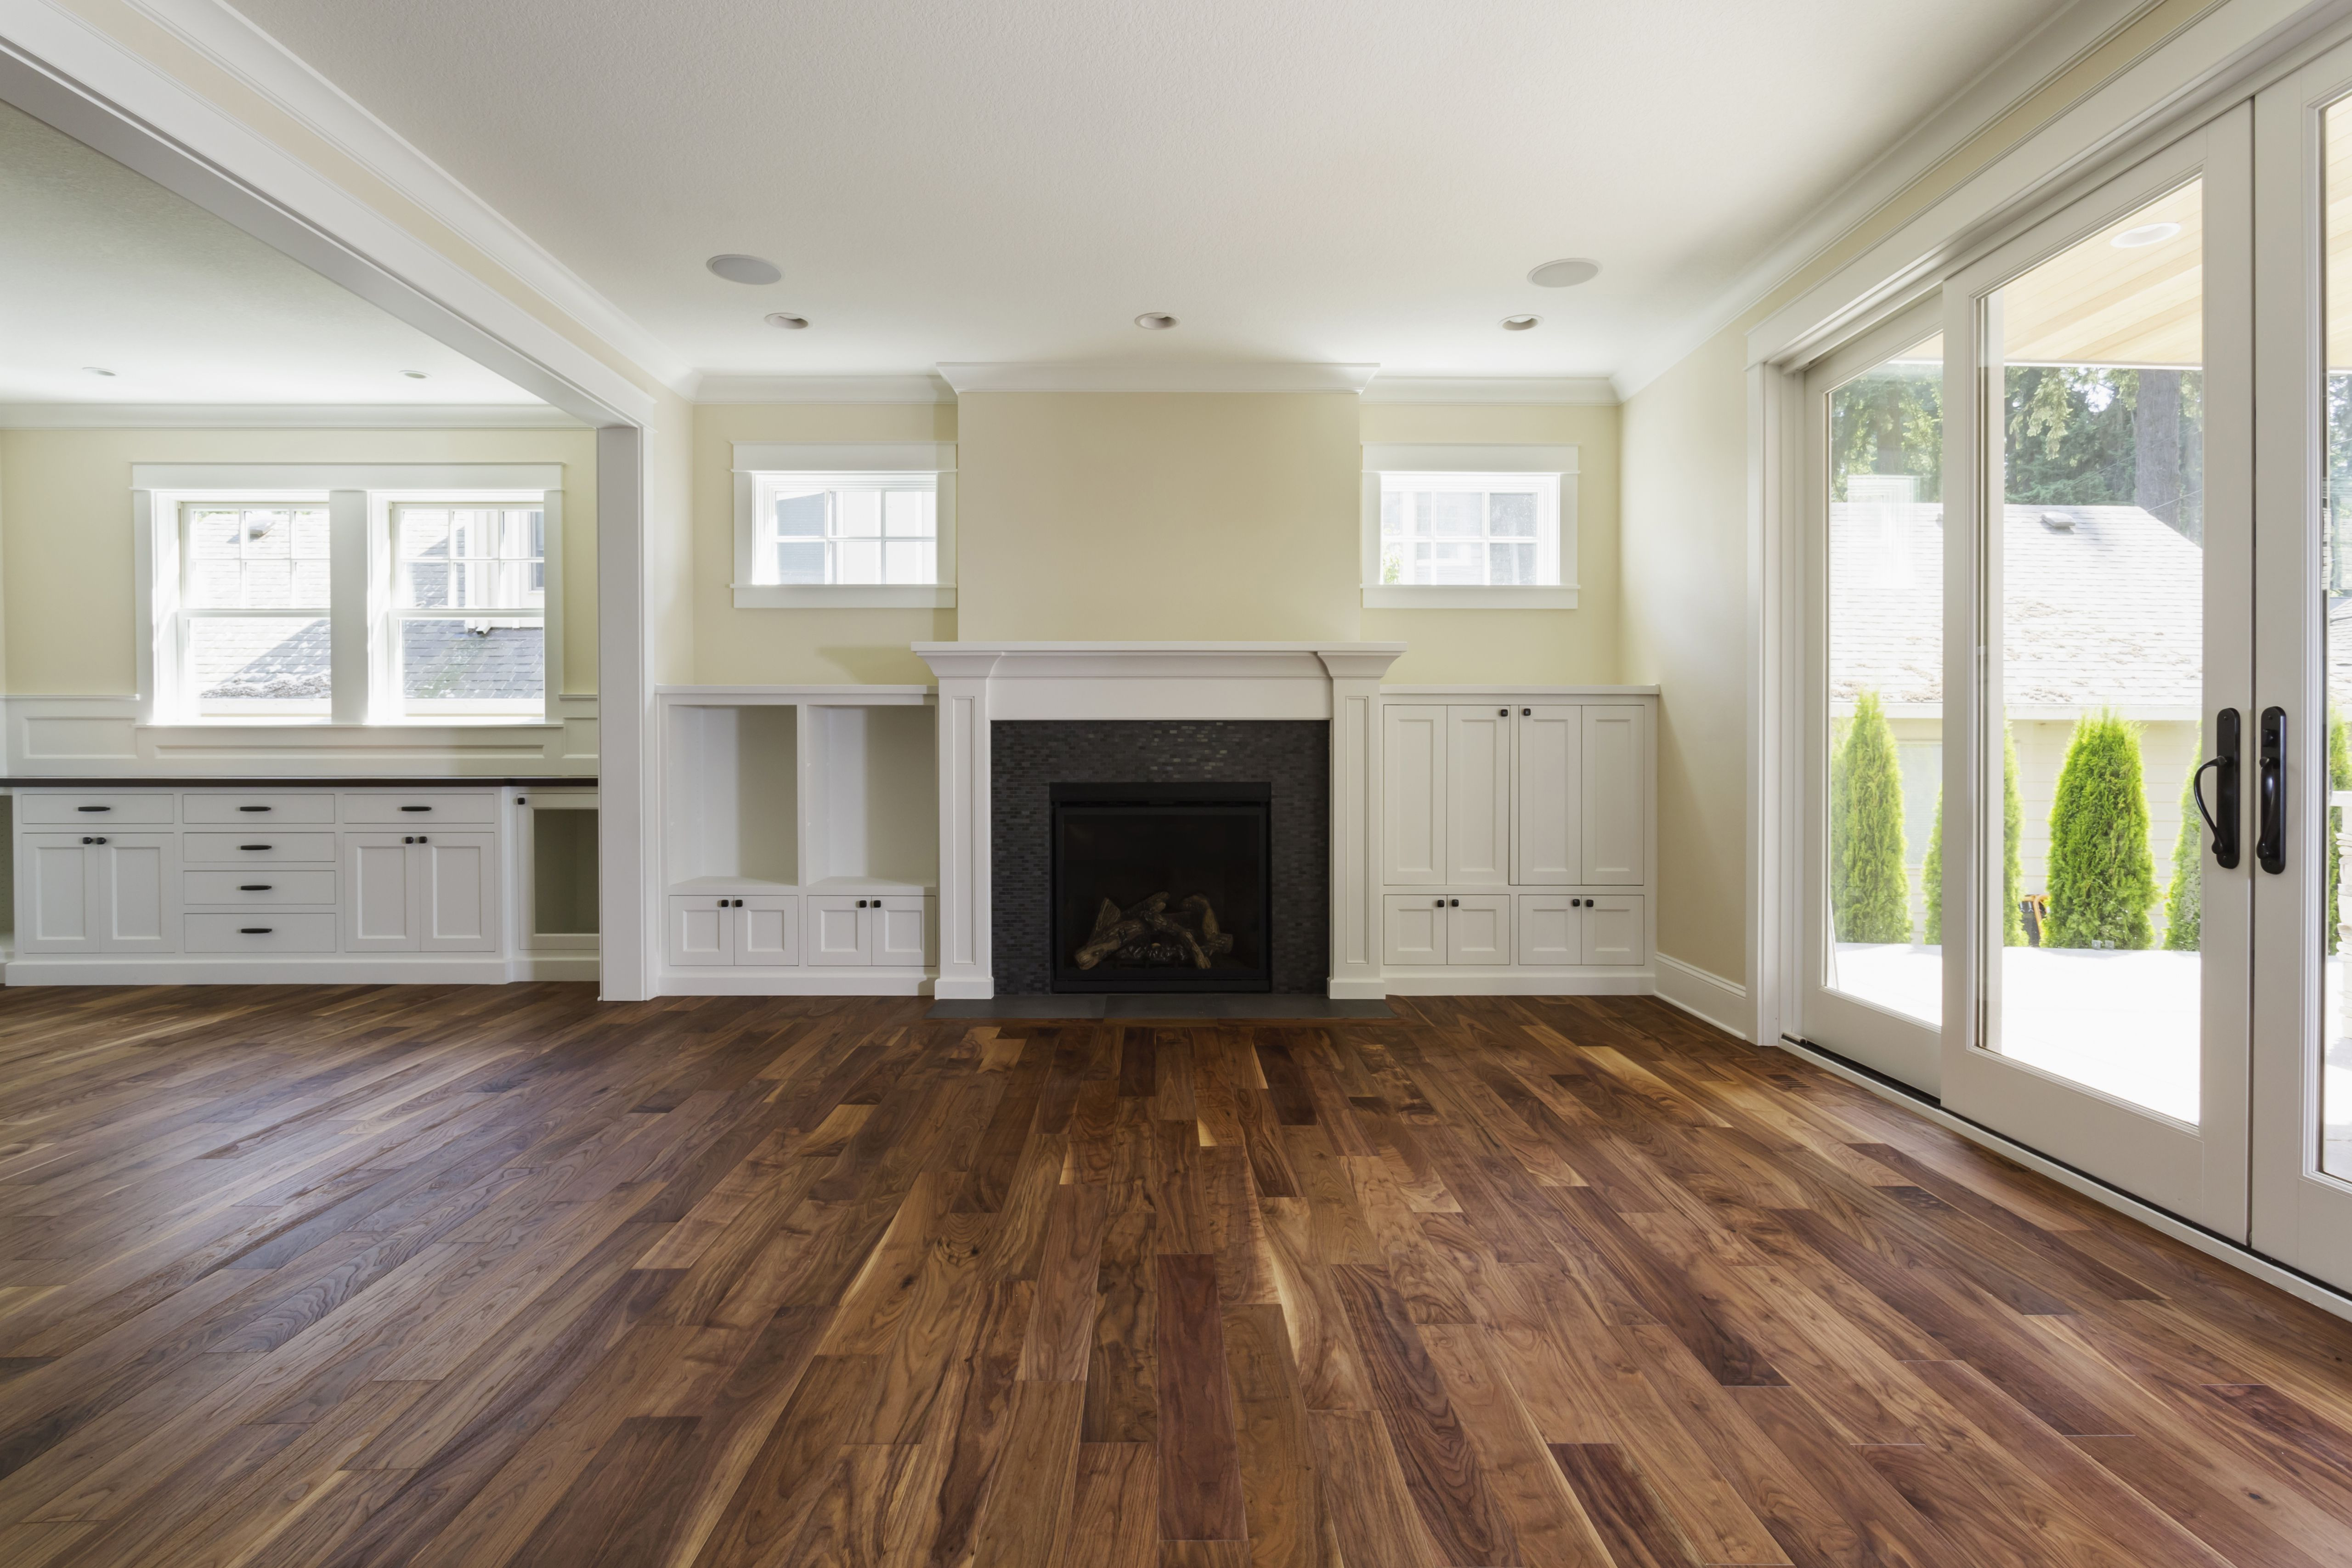 can you paint hardwood floors without sanding of the pros and cons of prefinished hardwood flooring in fireplace and built in shelves in living room 482143011 57bef8e33df78cc16e035397